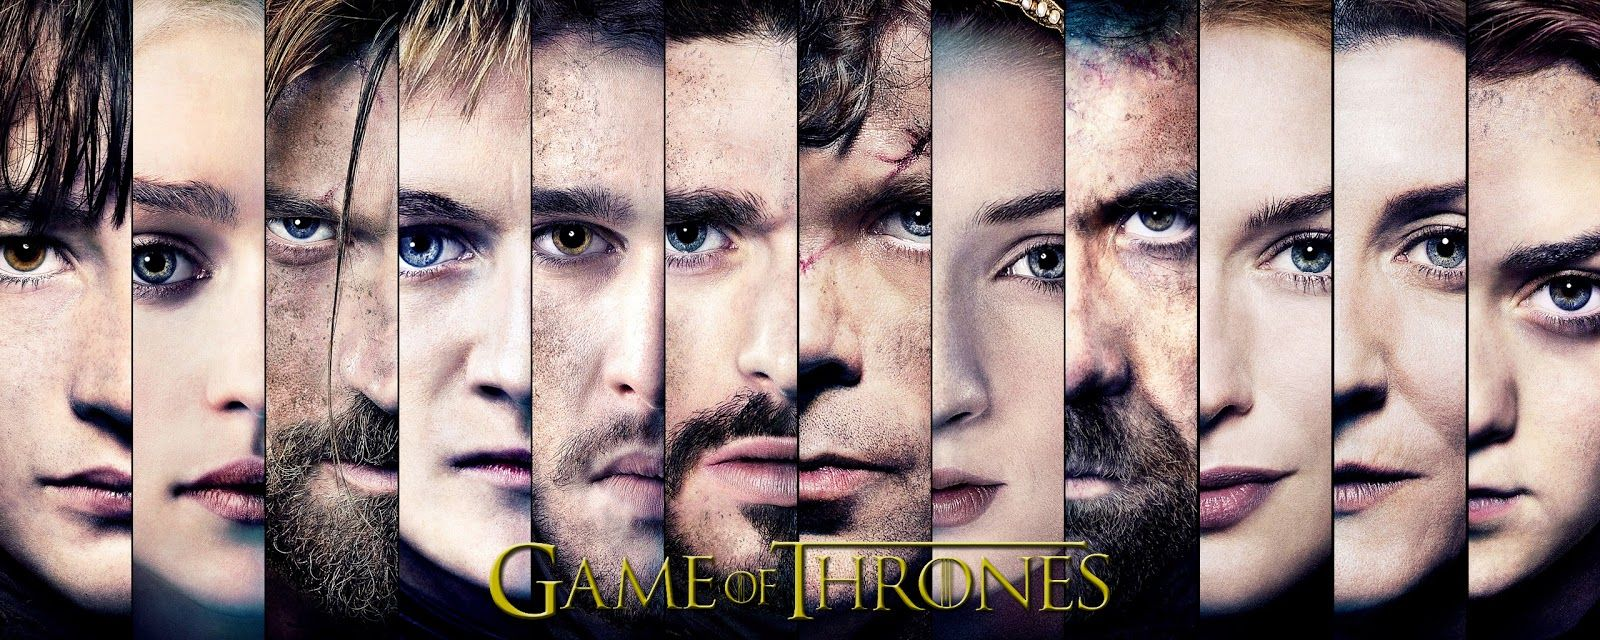 now tv game of thrones season 5 release